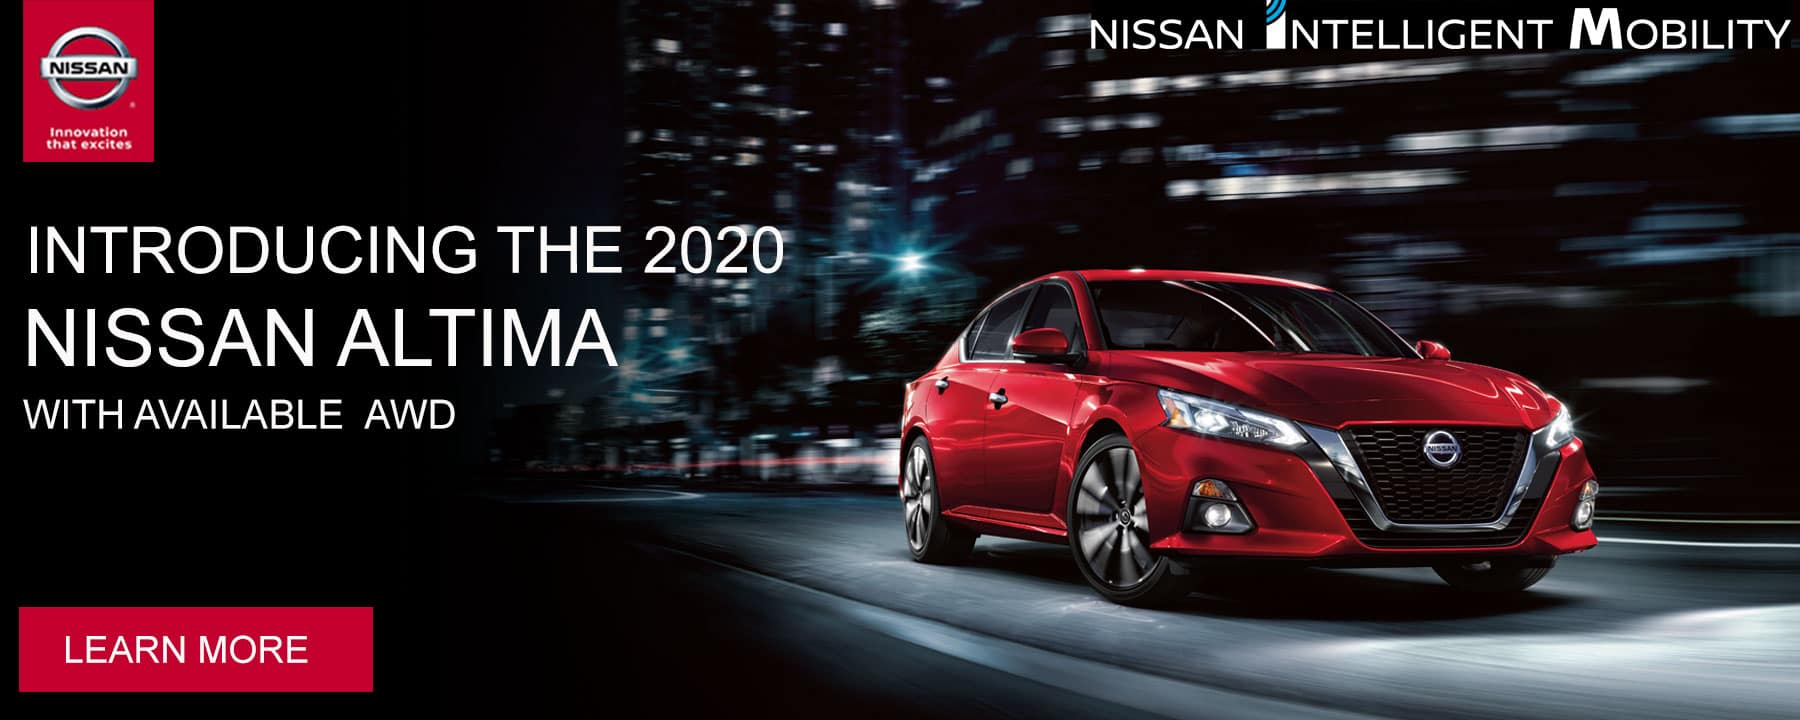 Introduing the 2020 Nissan Altima with available AWD at Star Nissan